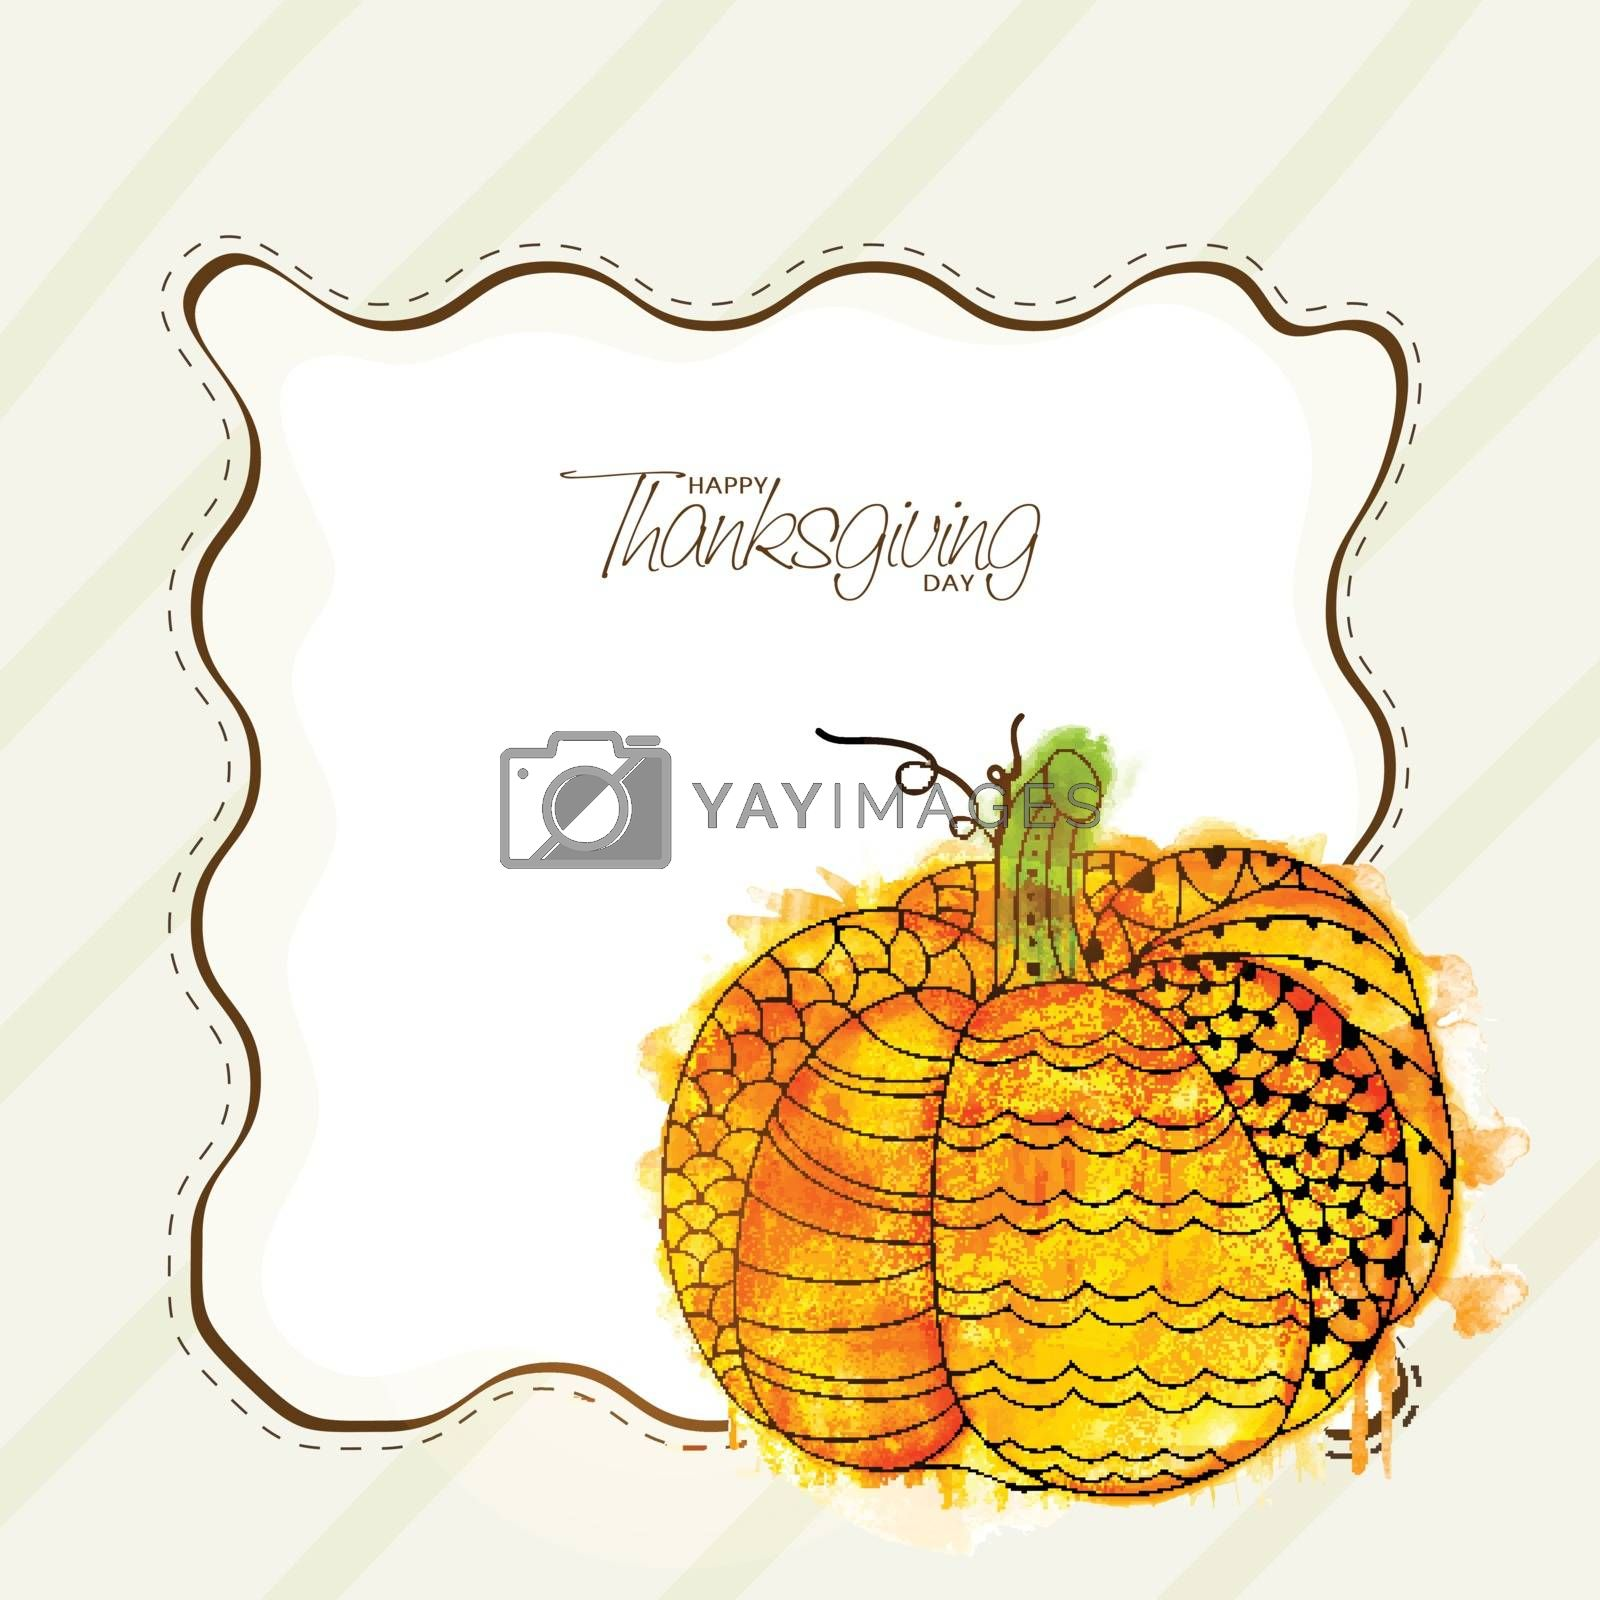 Greeting Card for Thanksgiving Day celebration. by aispl